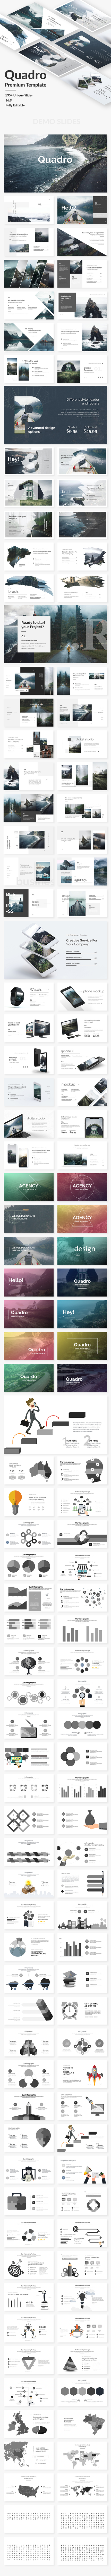 Quadro Premium Keynote Template - Creative Keynote Templates